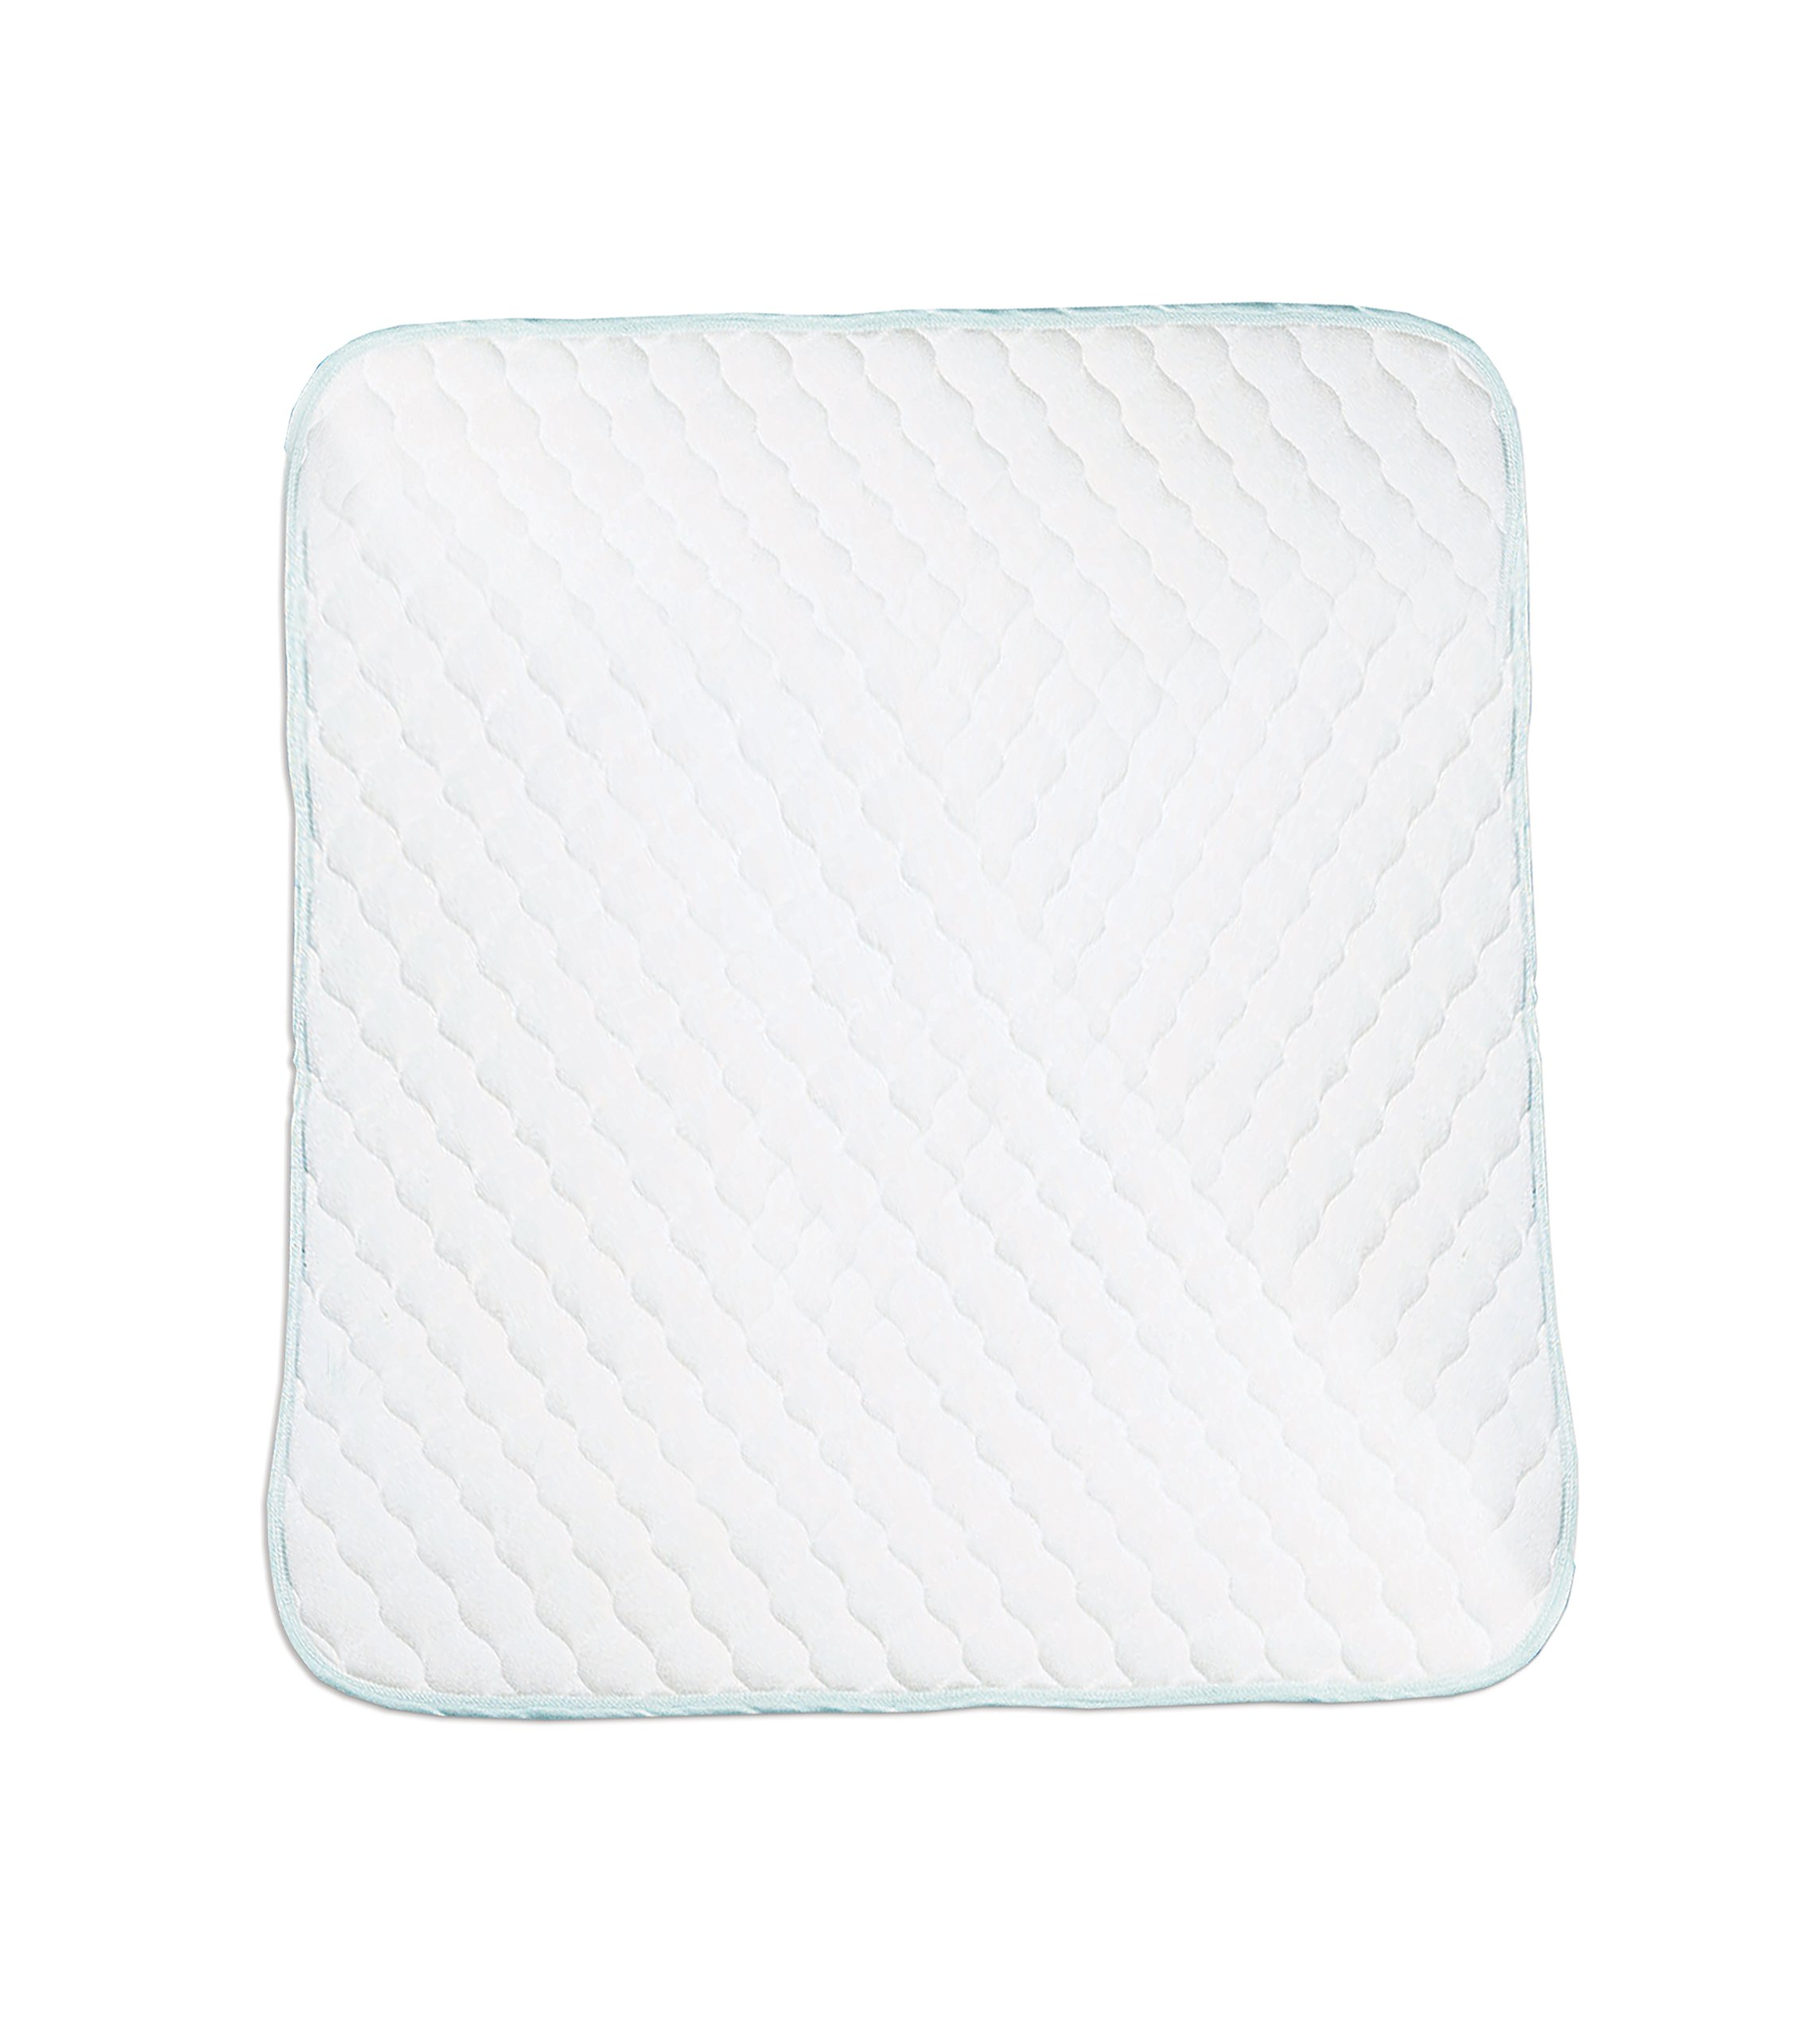 Priva NO SLIP Super Absorbent Waterproof Sheet and Mattress Protector, 300 Washes, 34 Inch x 36 Inch